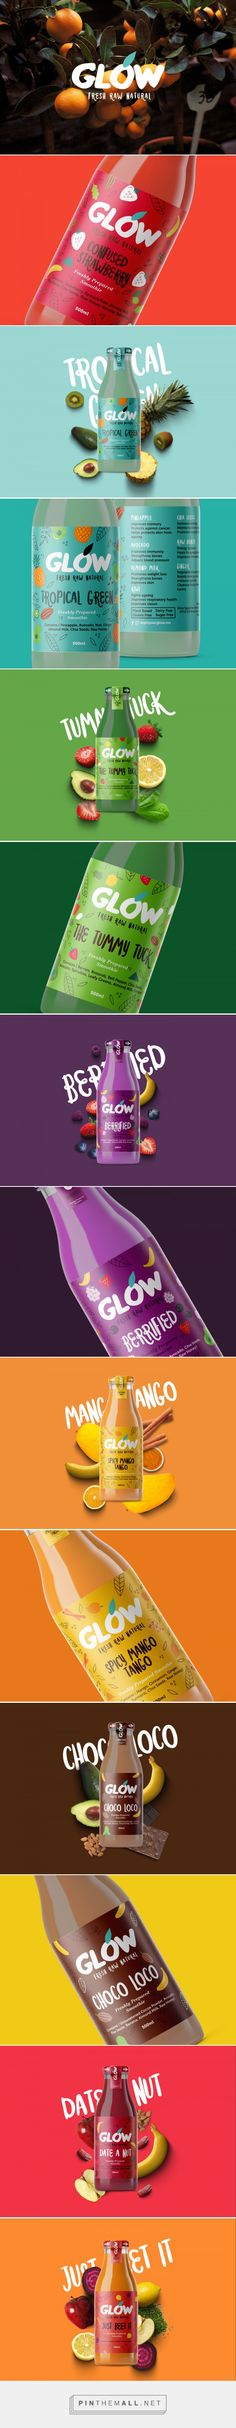 Glow - Fresh, Raw & Natural Juice & Smoothies Packaging by Meroo Seth, Nachiket Jadhav, and Mechi Co.design | Fivestar Branding Agency – Design and Branding Agency & Curated Inspiration Gallery  #juice #juicepackaging #packaging #package #packagingdesign #packaginginspiration #design #designinspiration